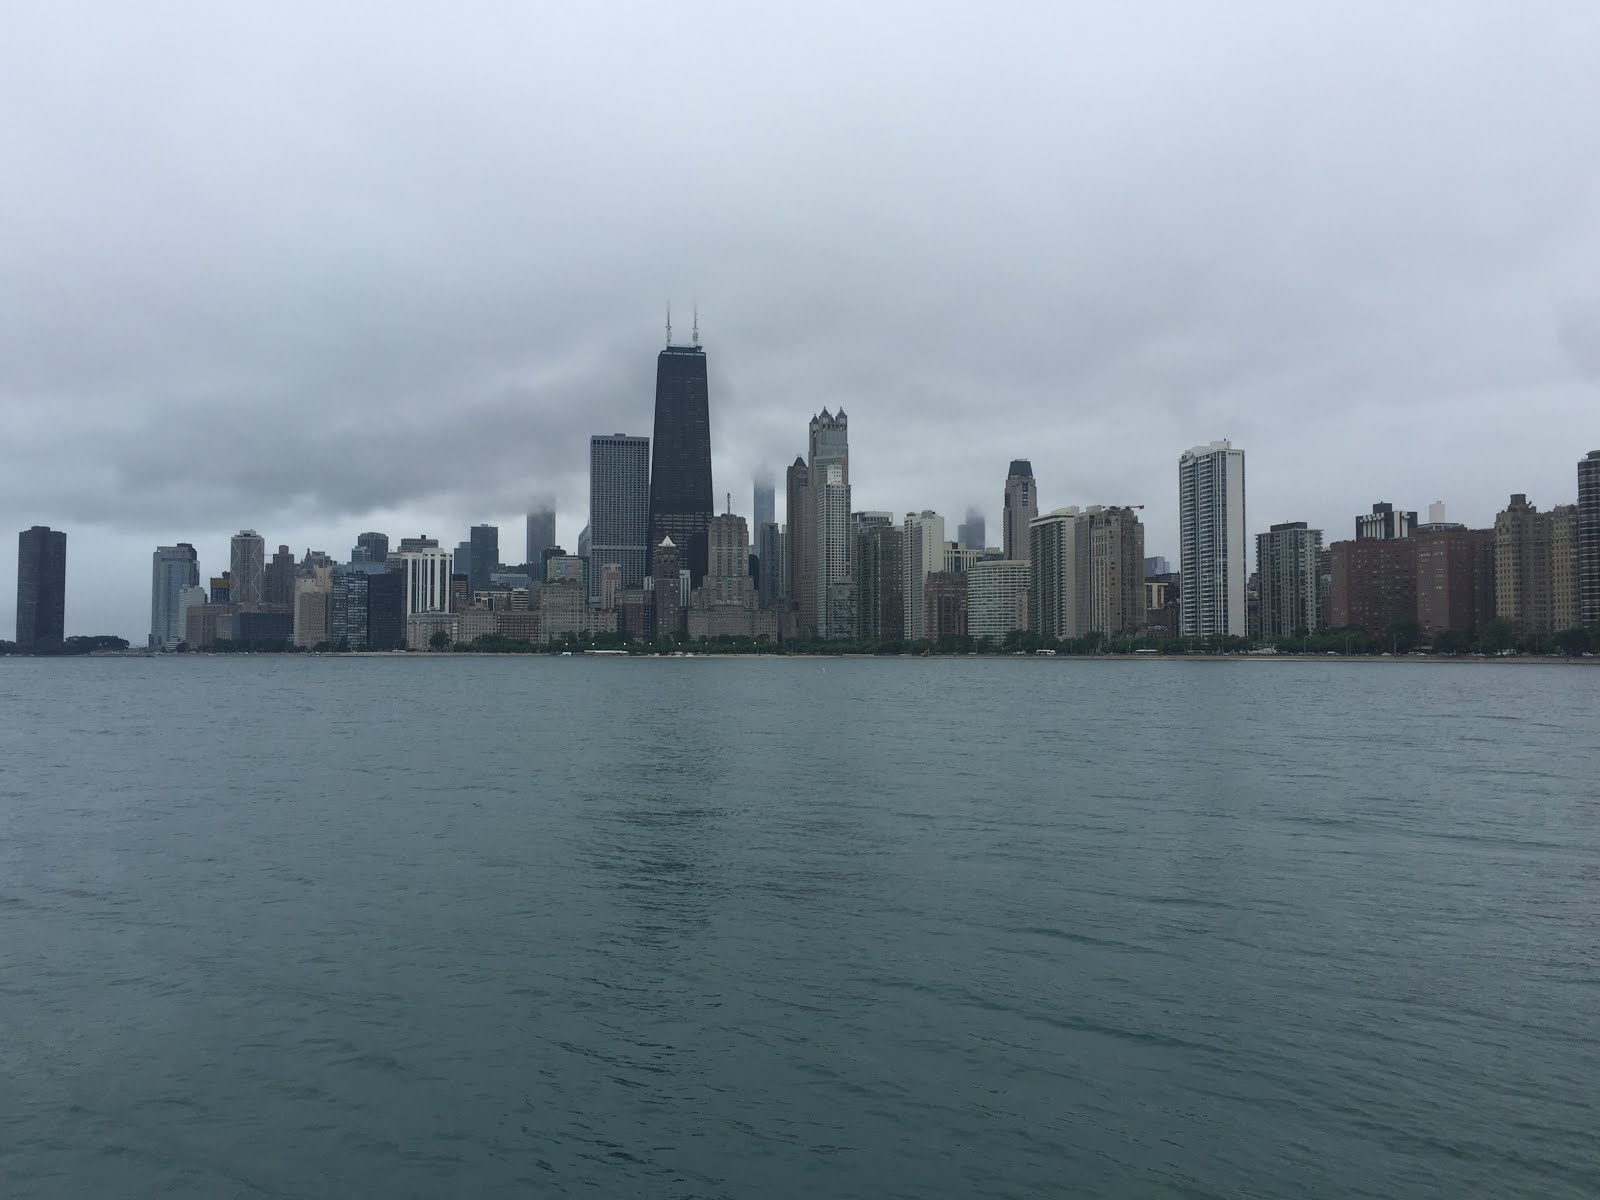 Windy City on a cloudy day